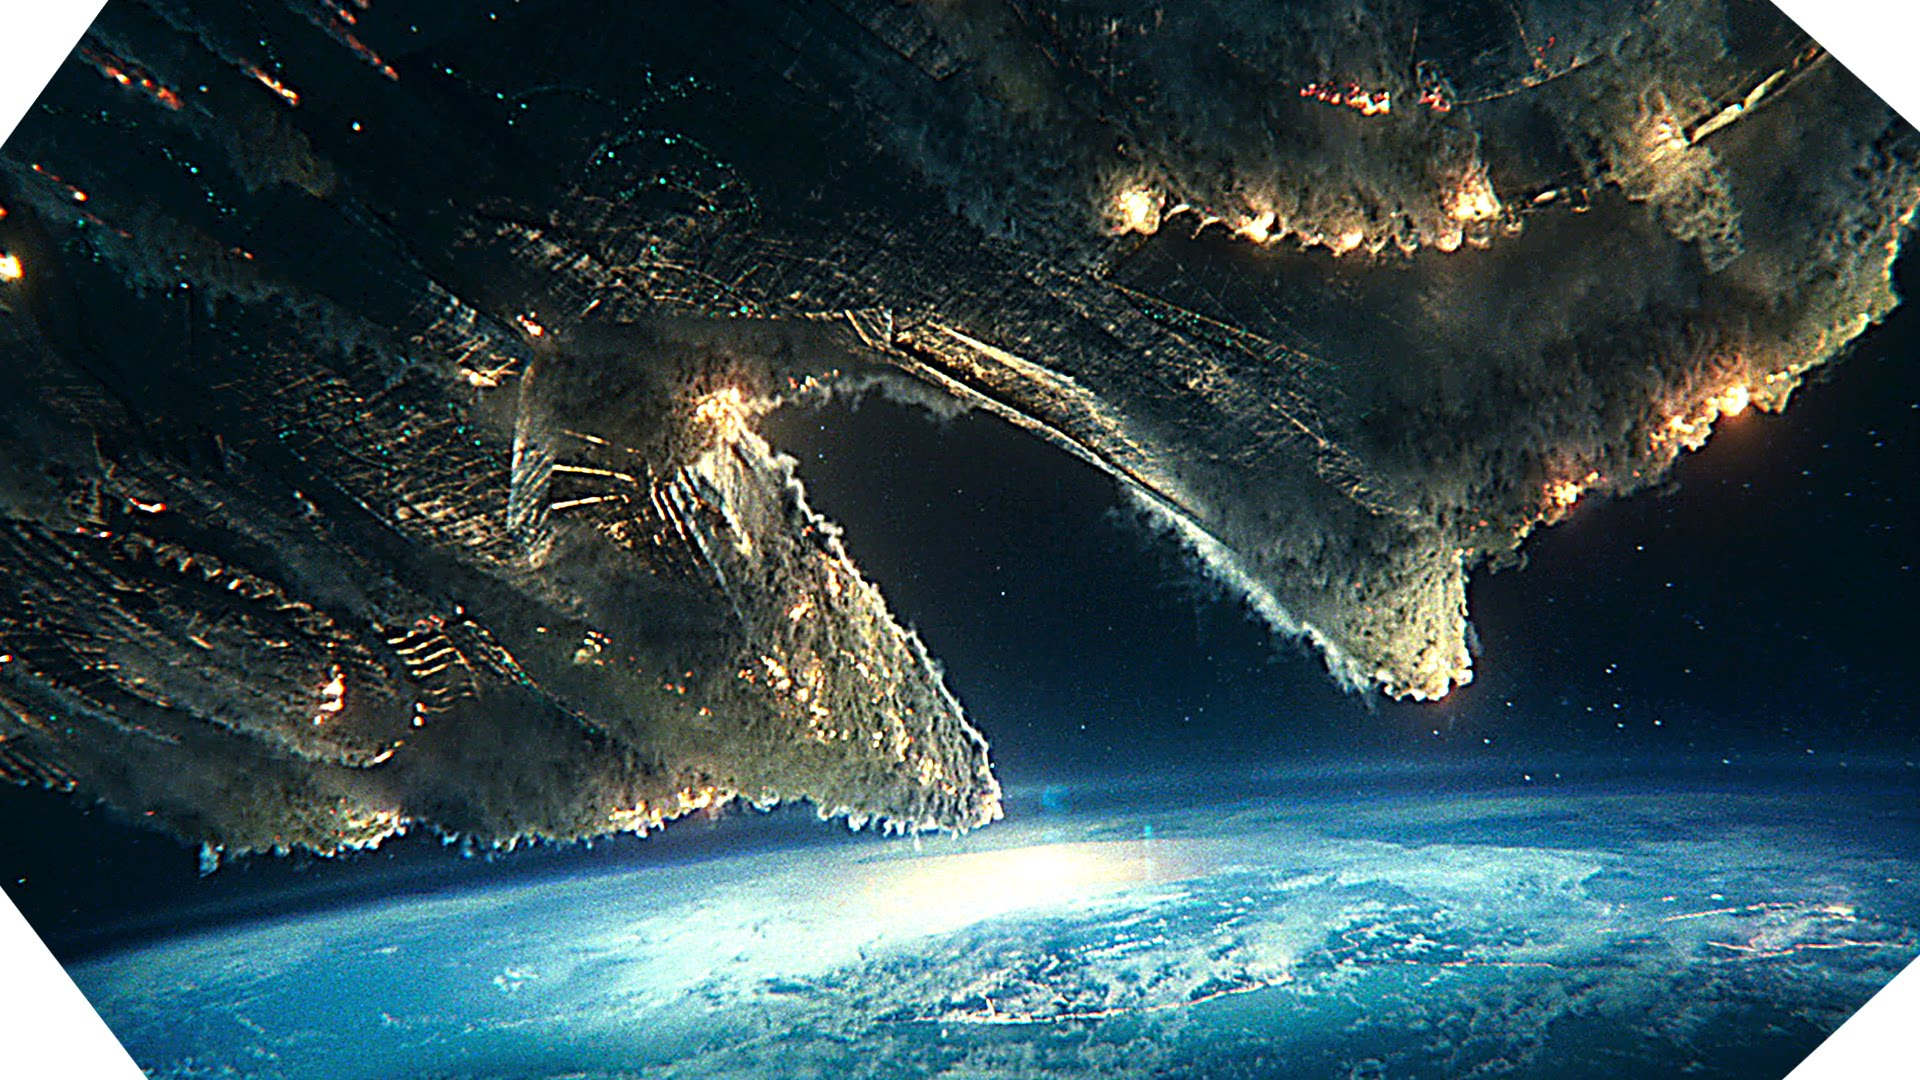 Ultra HD INDEPENDENCE DAY 2 Resurgence TRAILER FaceTubebg 1920x1080